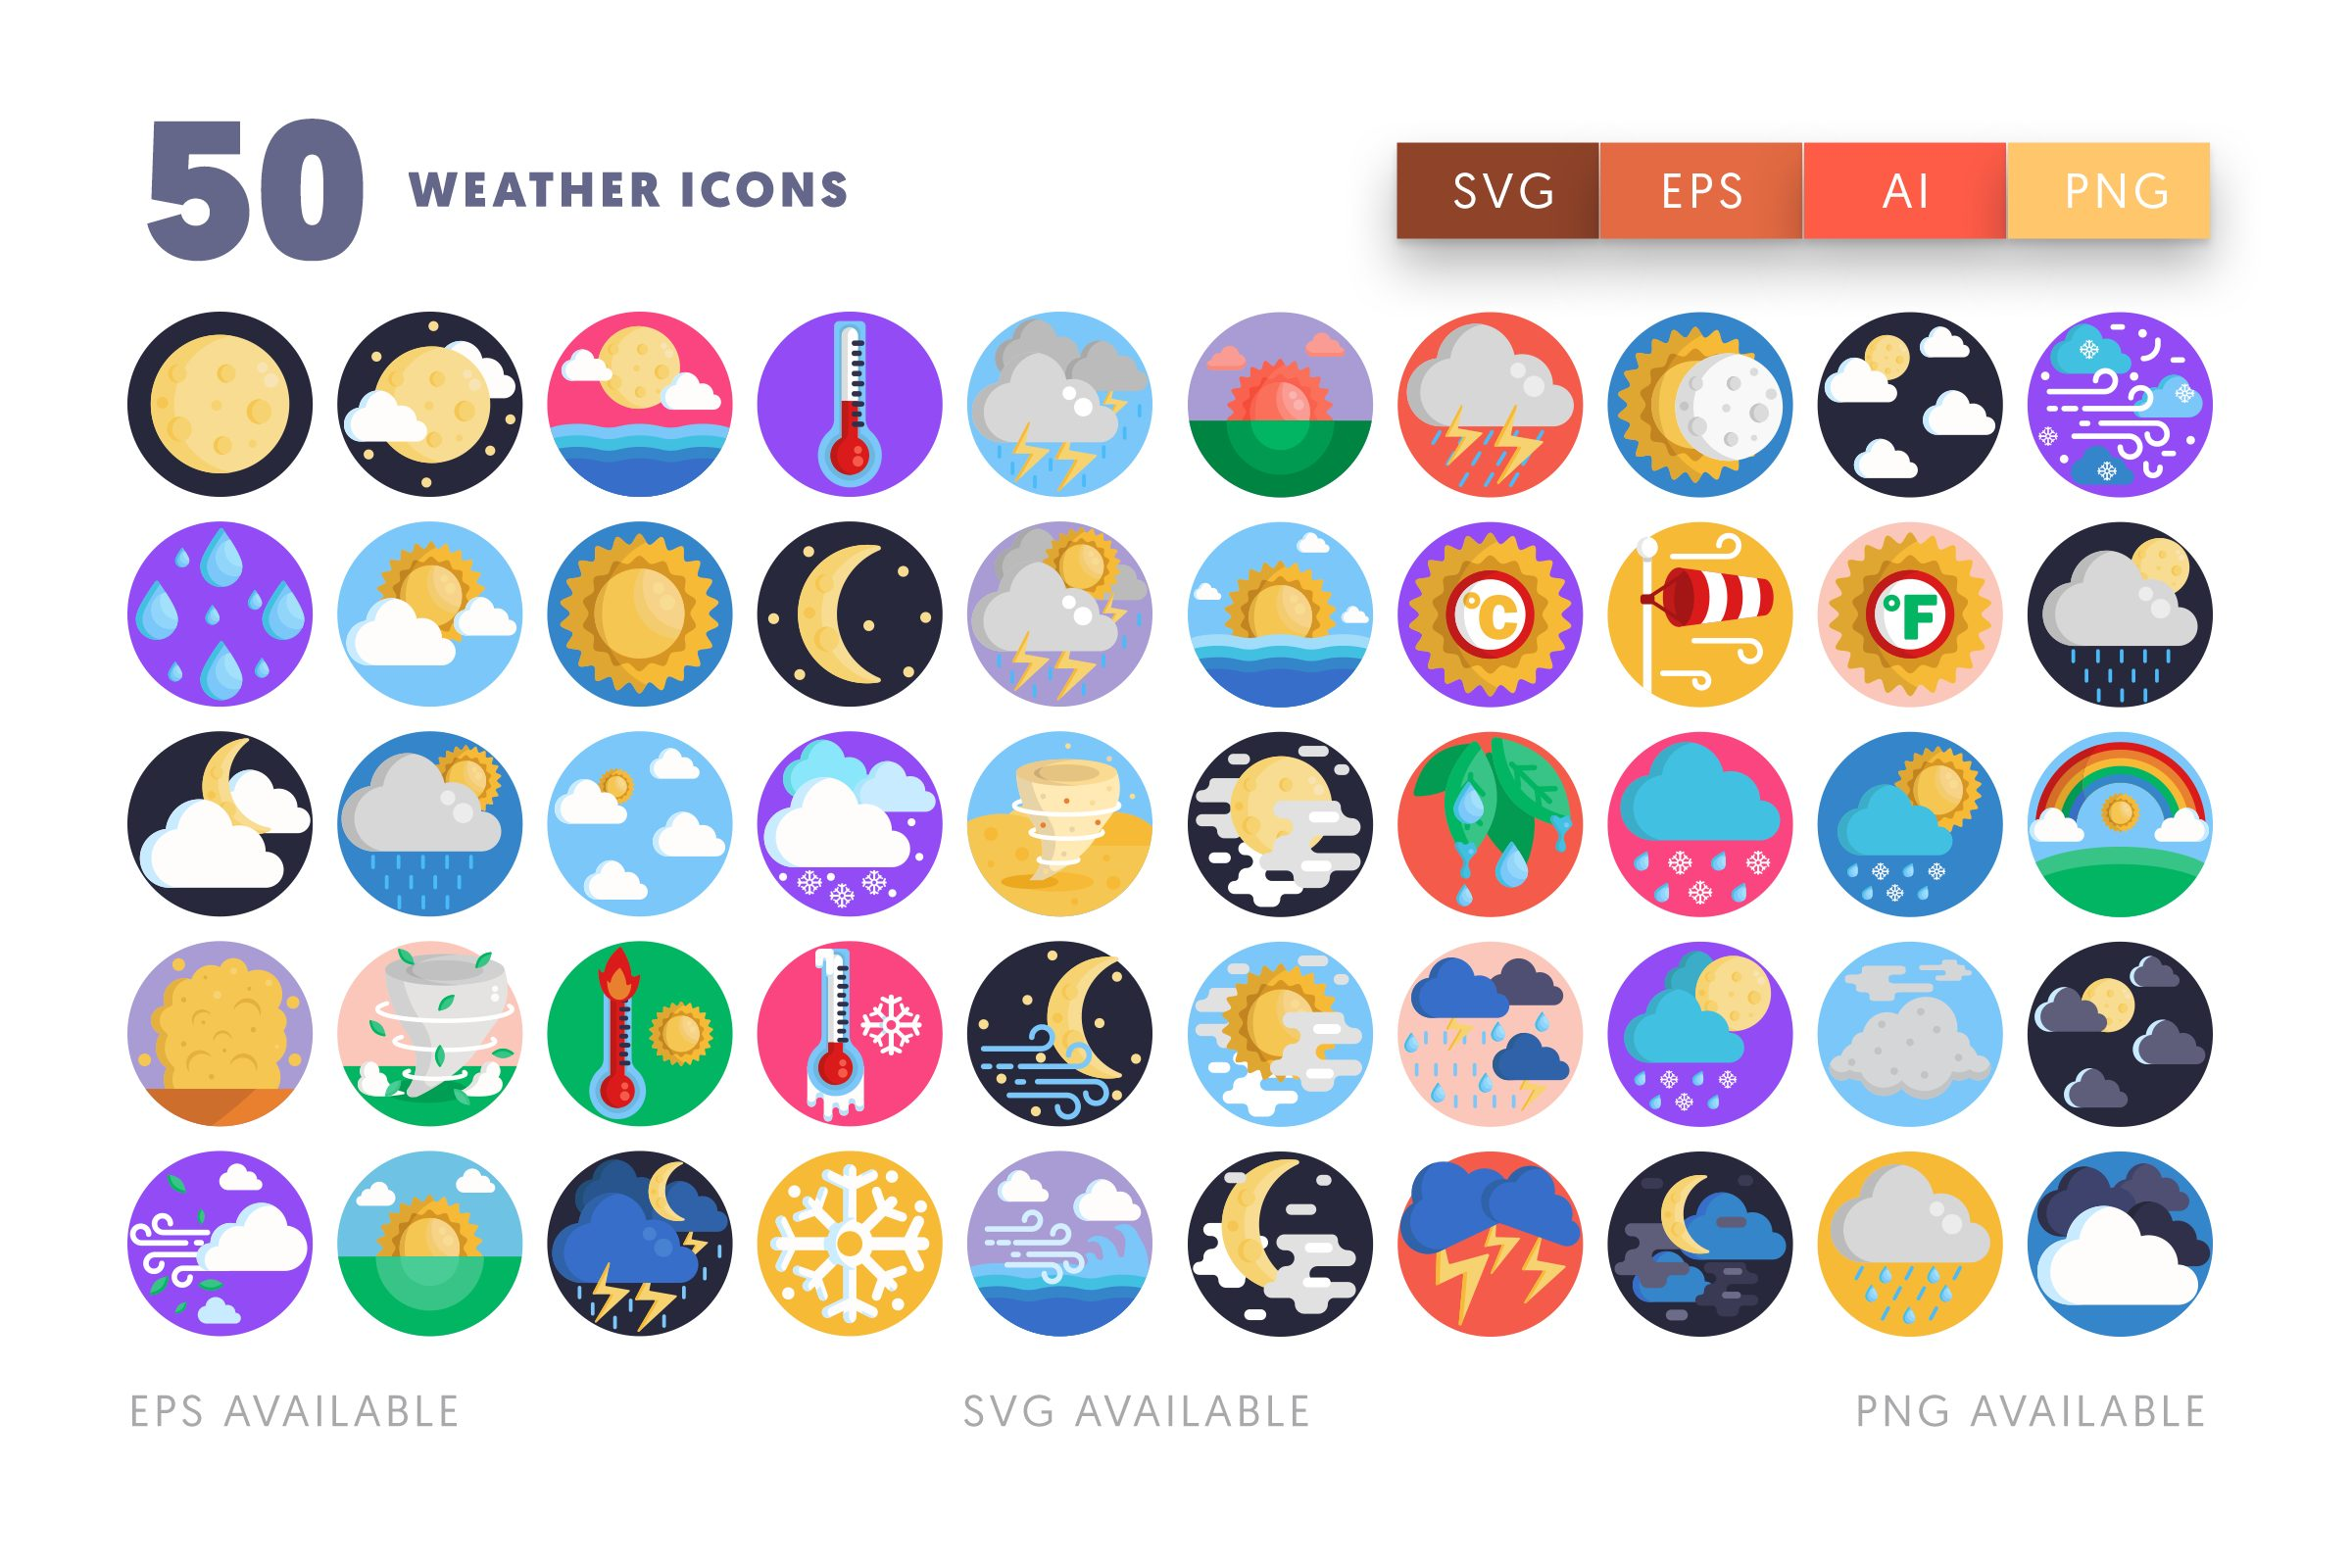 Weather icons png/svg/eps